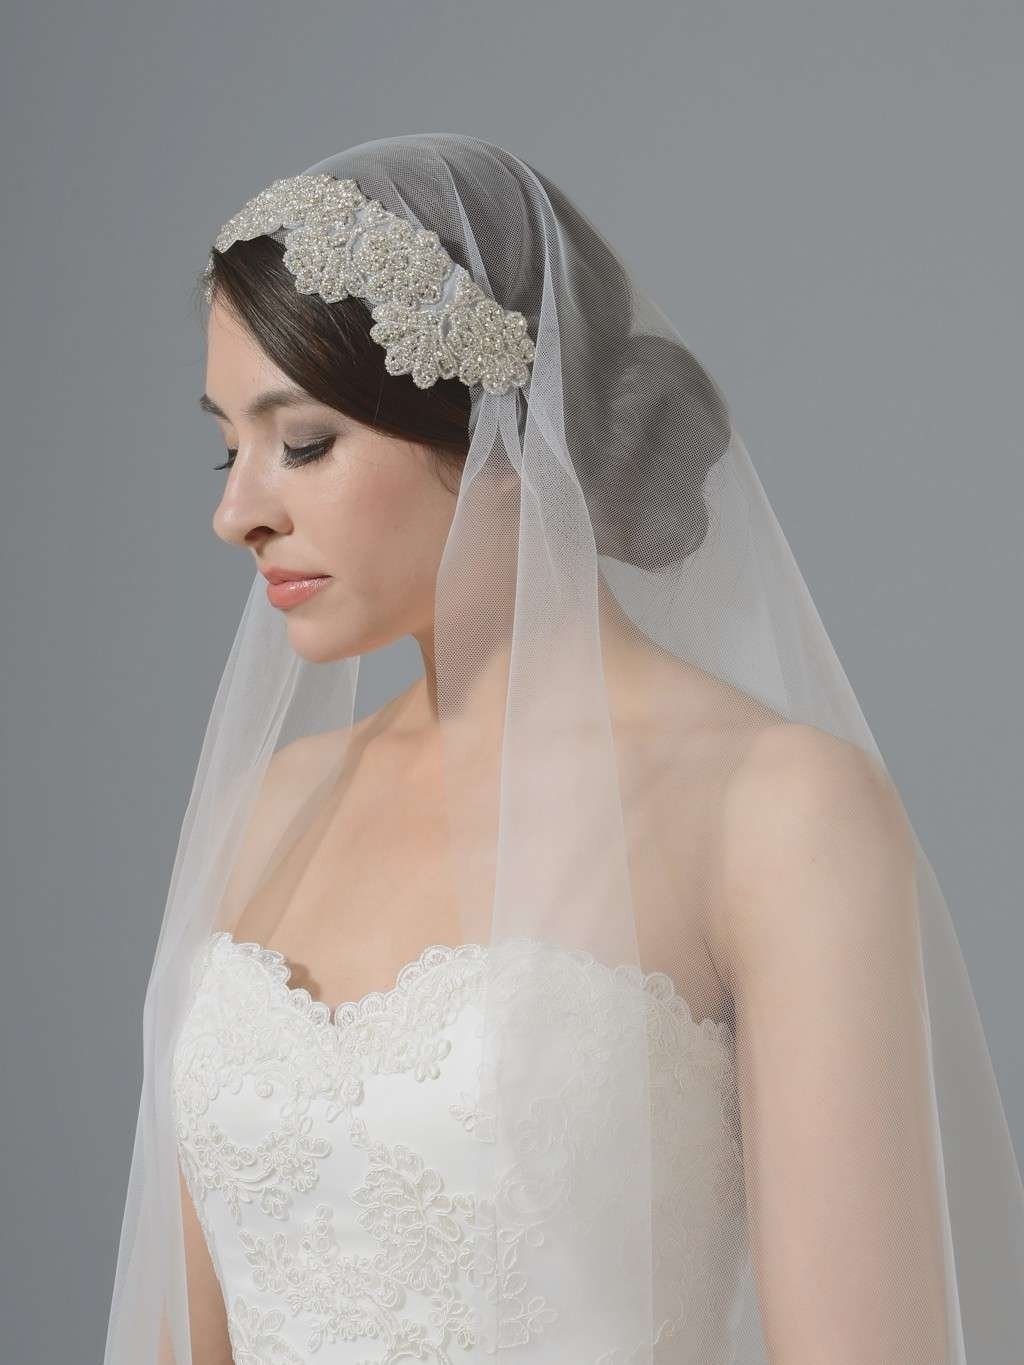 How To Make A Wedding Veil Inspirational Wedding Hairstyles For With Well Liked Wedding Hairstyles For Medium Length Hair With Veil (View 5 of 15)